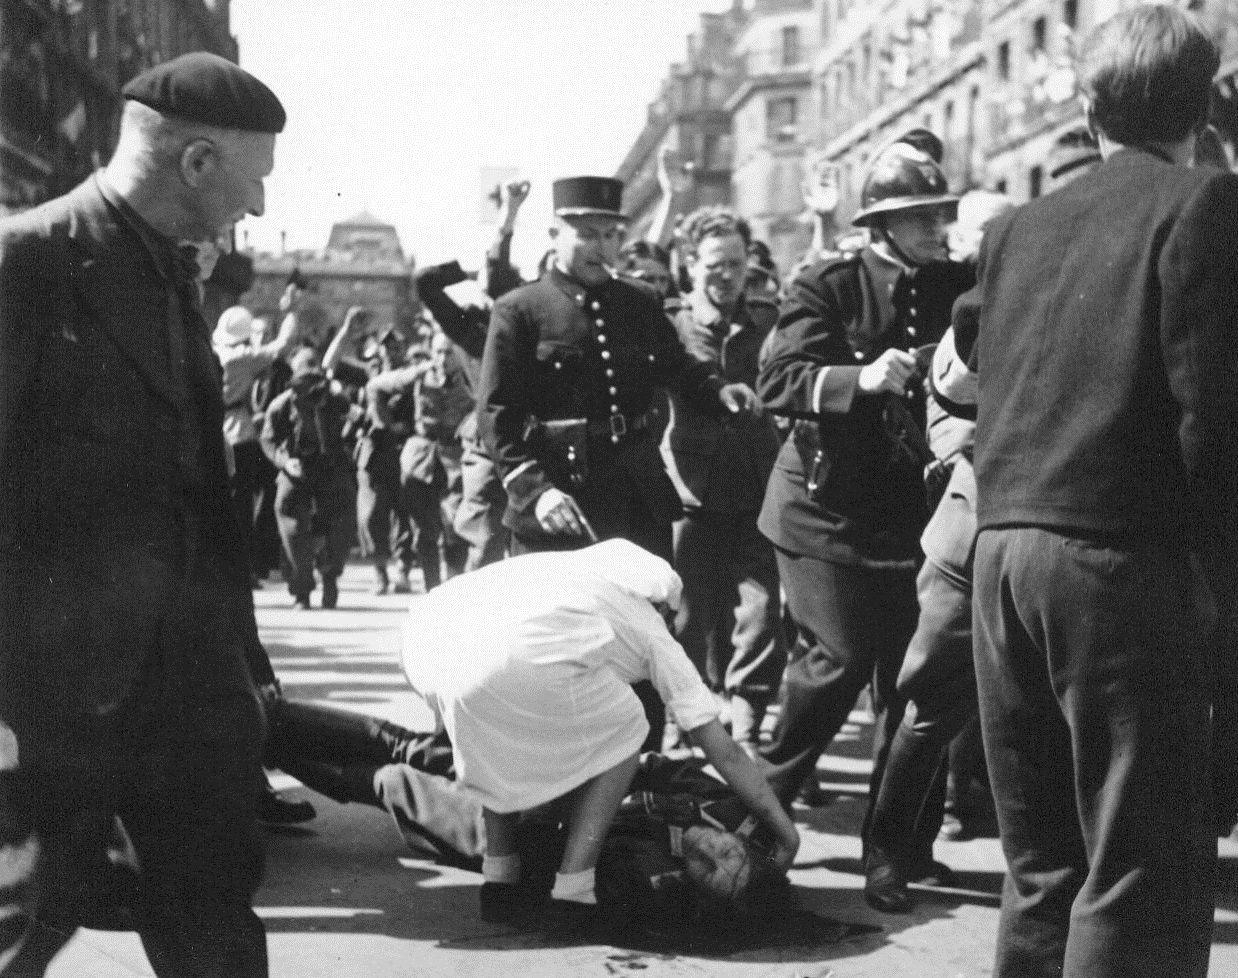 Resistance Roundup, 8/28/1944. Paris -- Lying wounded in the street, a German Officer gets the attention of a Red Cross worker as French patriots round up Nazis and collaborators  after street fighting in liberated Paris. Resistance snipers still terrorize the populace of the French capital. The allies have left the job of restoring order in Paris to the French. 8/28/44 (ACME);